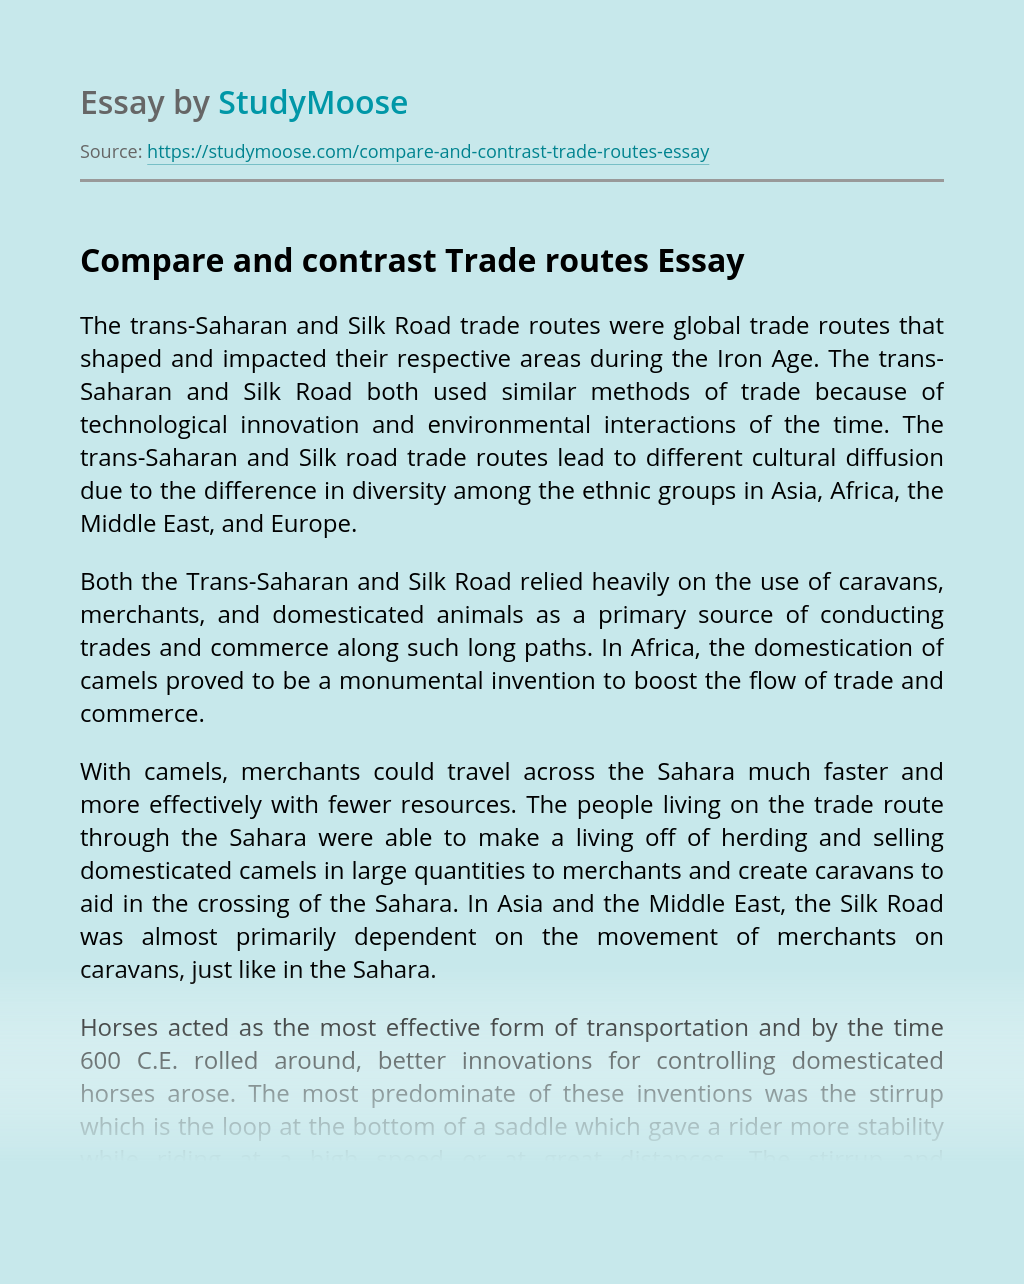 Compare and contrast Trade routes